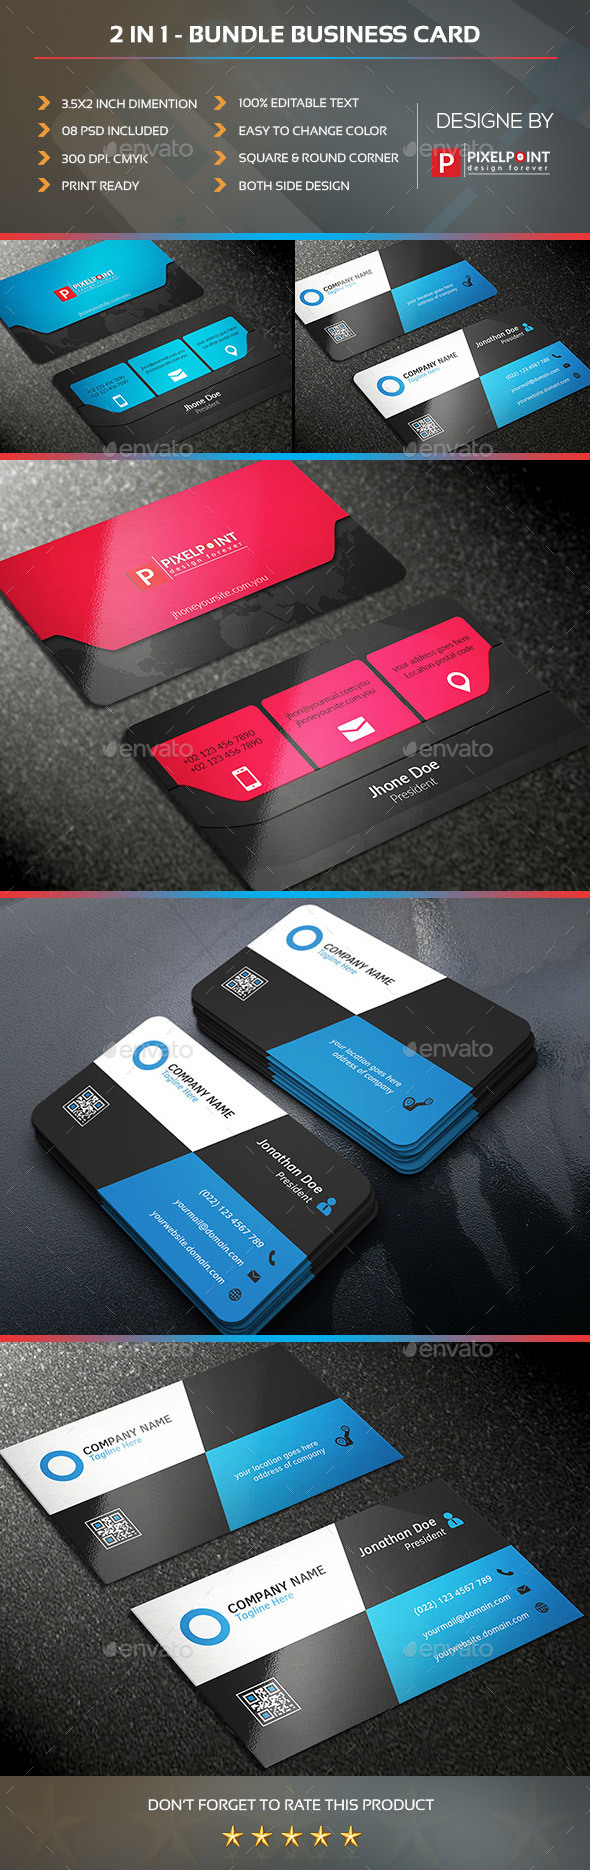 2 in 1 Bundle Business Card - Business Cards Print Templates